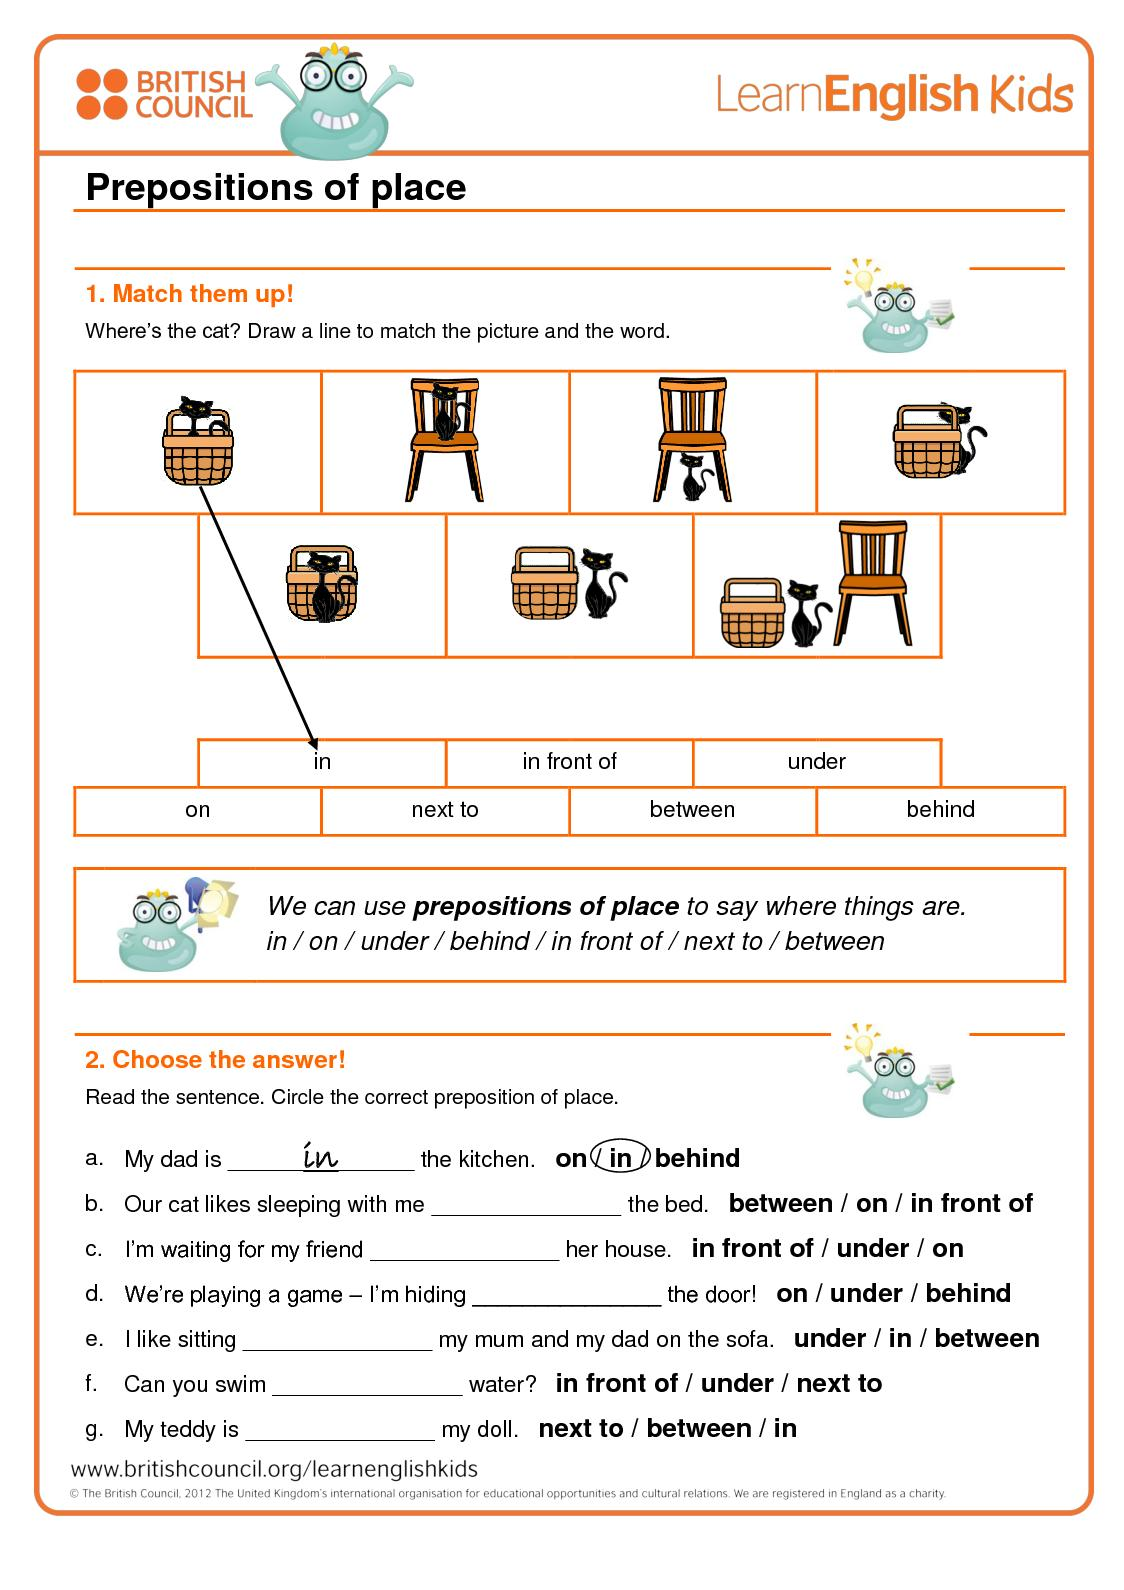 Calaméo - Grammar Games Prepositions Of Place Worksheet